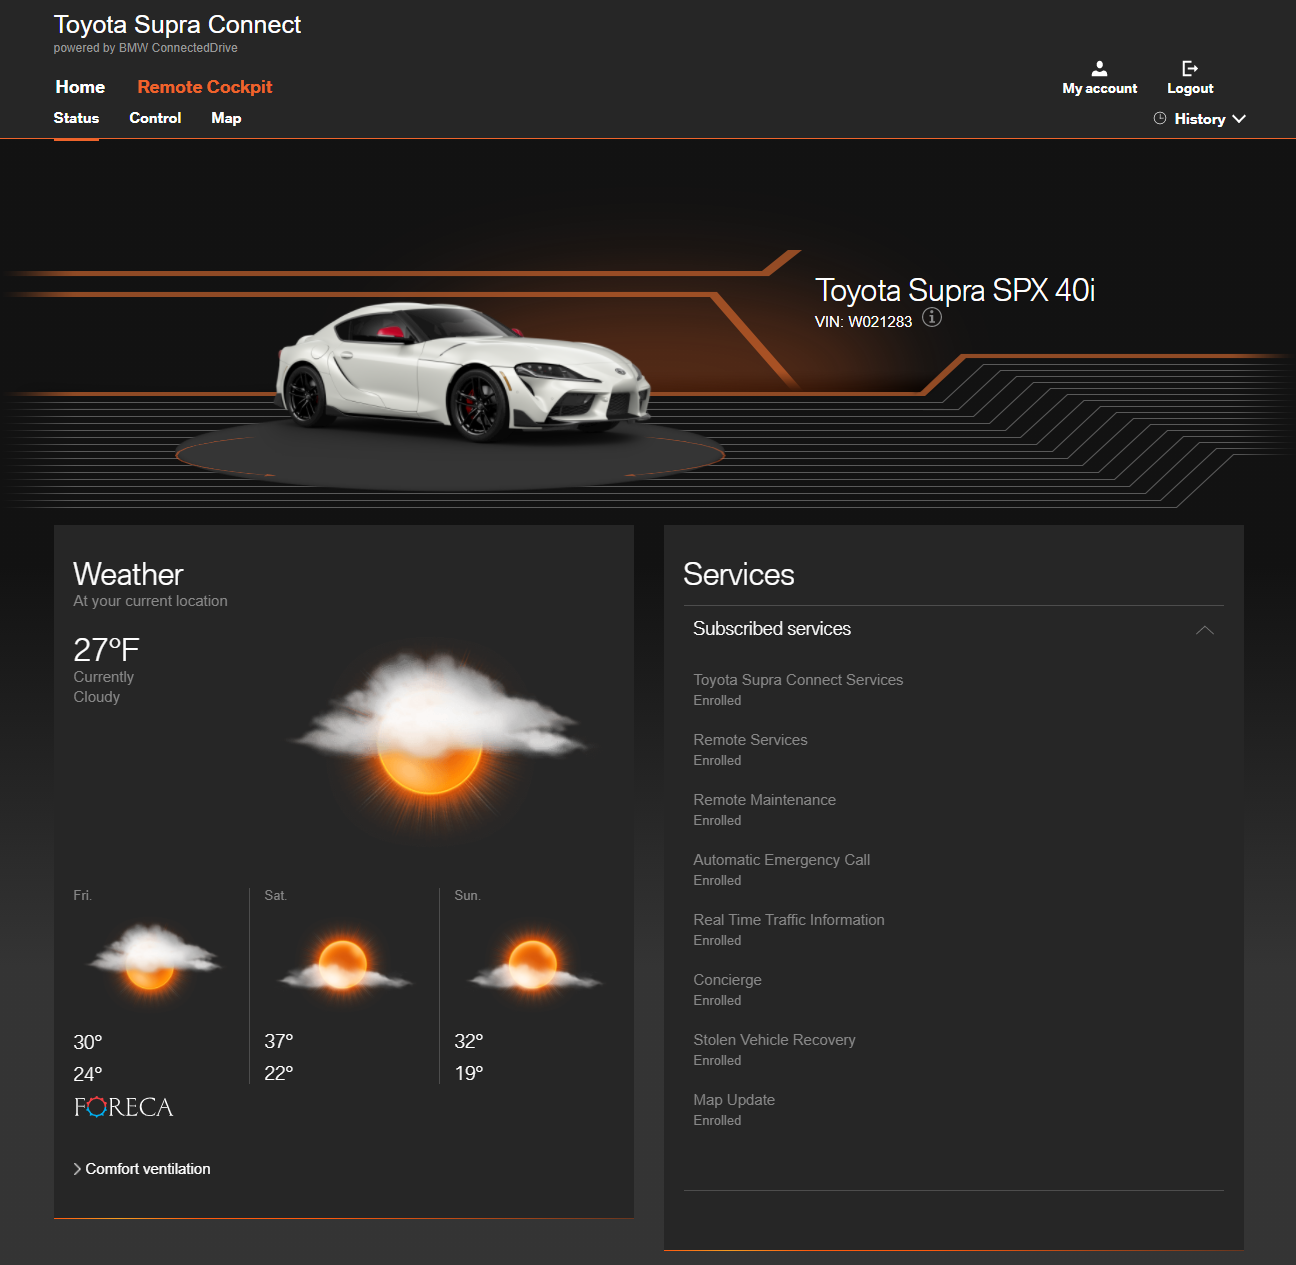 2021-01-08 14_48_53-Toyota Supra Connect customer portal – connecting to your Toyota Supra dig...png